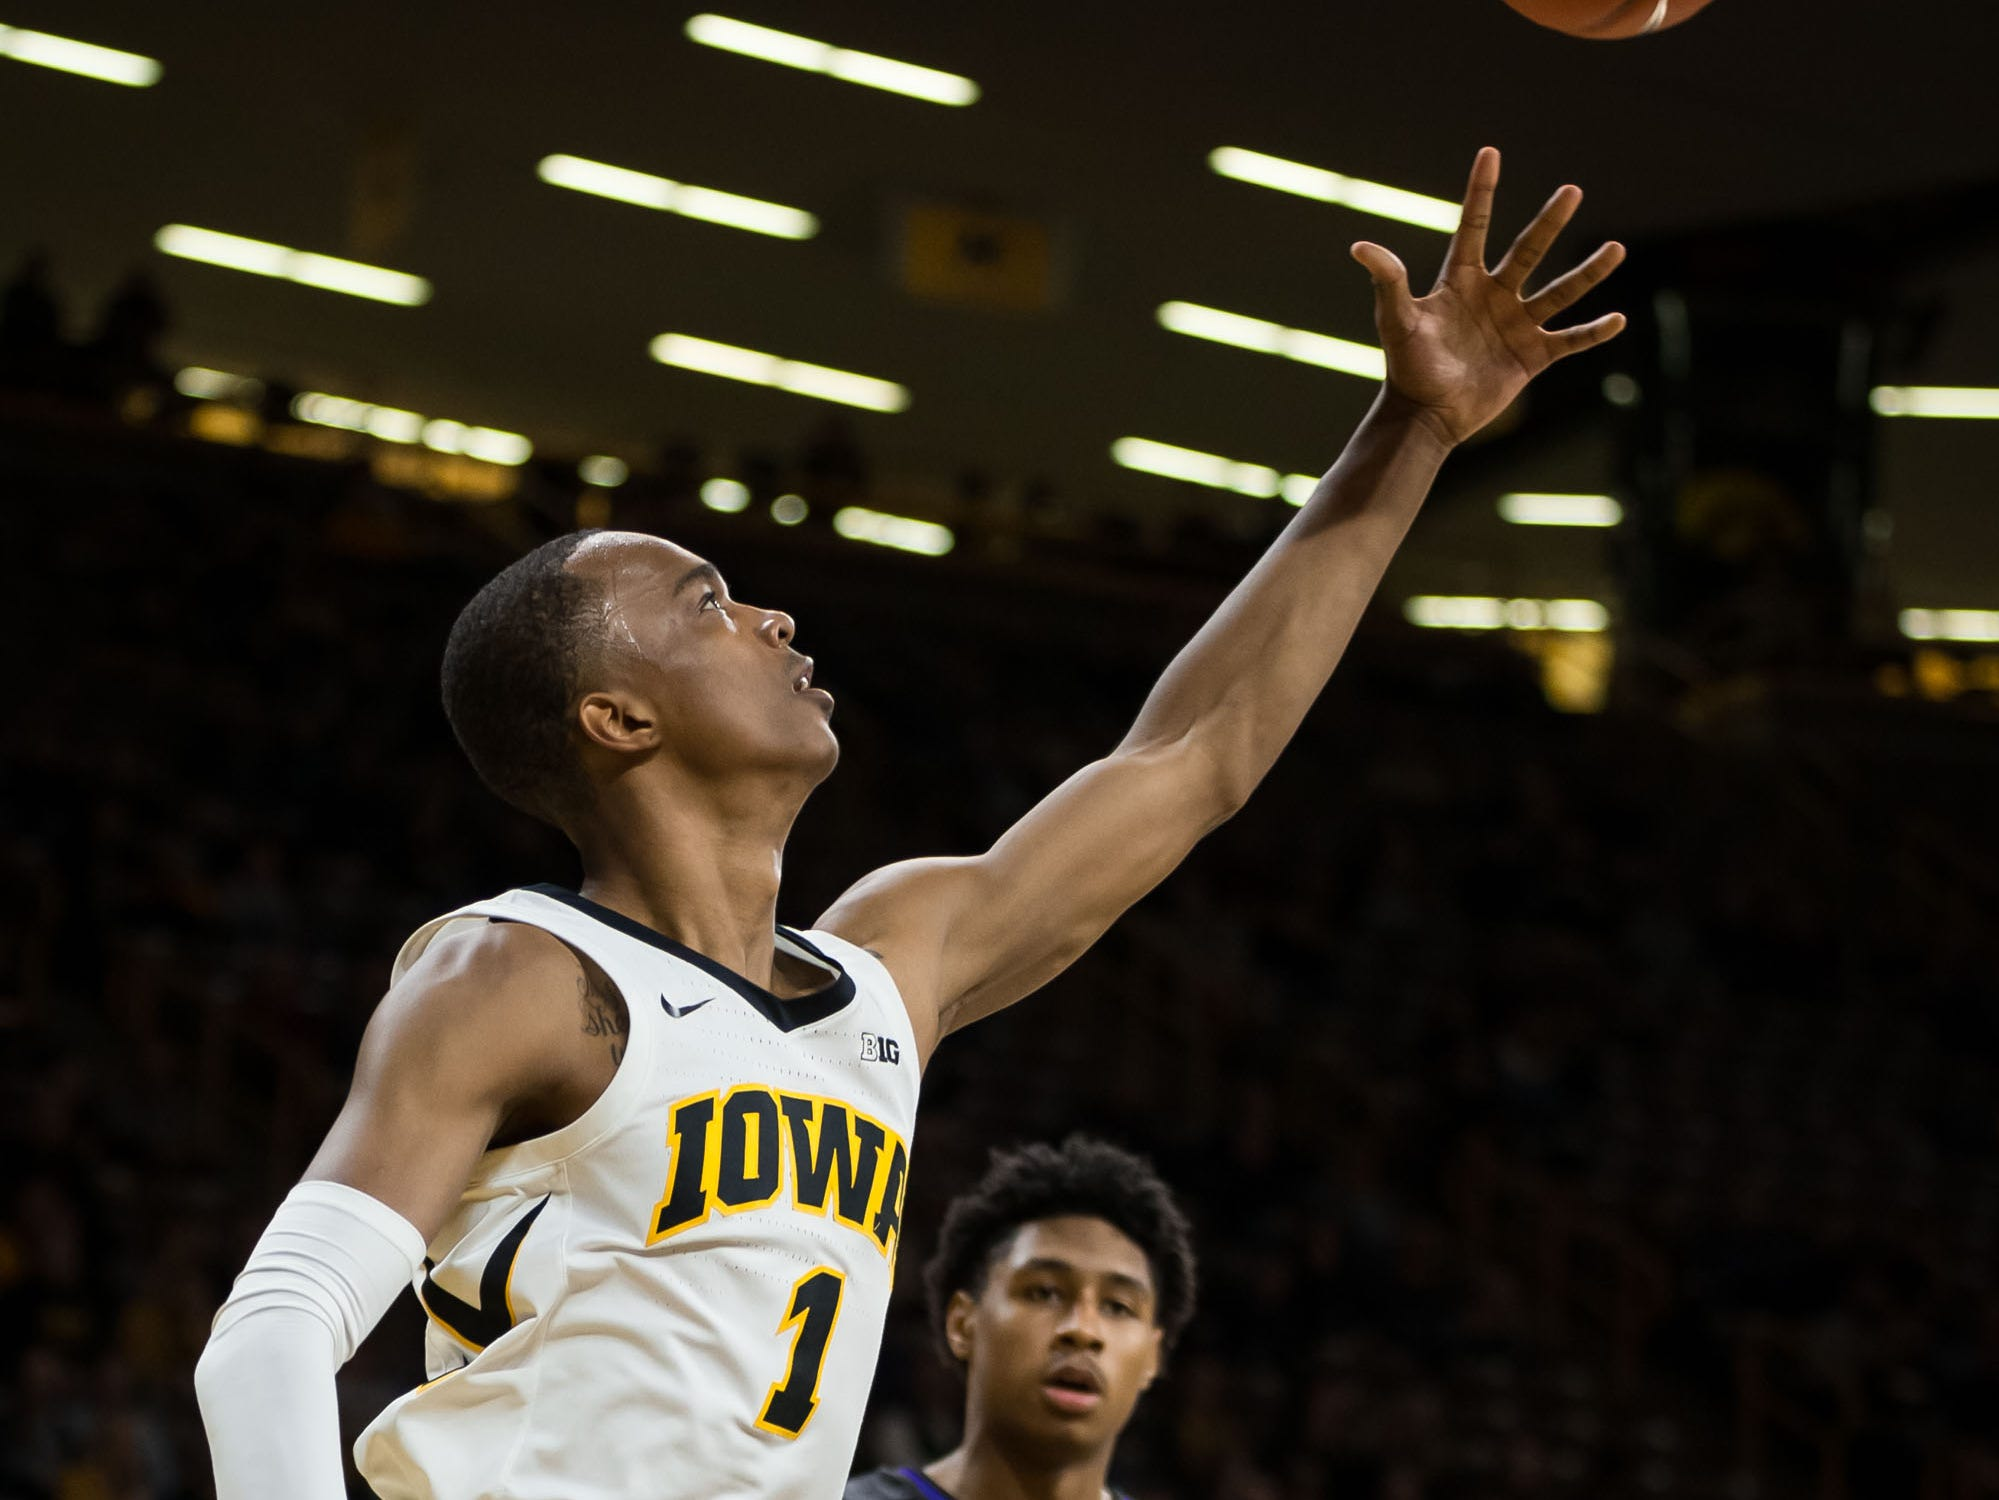 Iowa junior guard Maishe Dailey (1) shoots a layup in the second half at Carver Hawkeye Arena in Iowa City on Tuesday, Dec. 18, 2018.